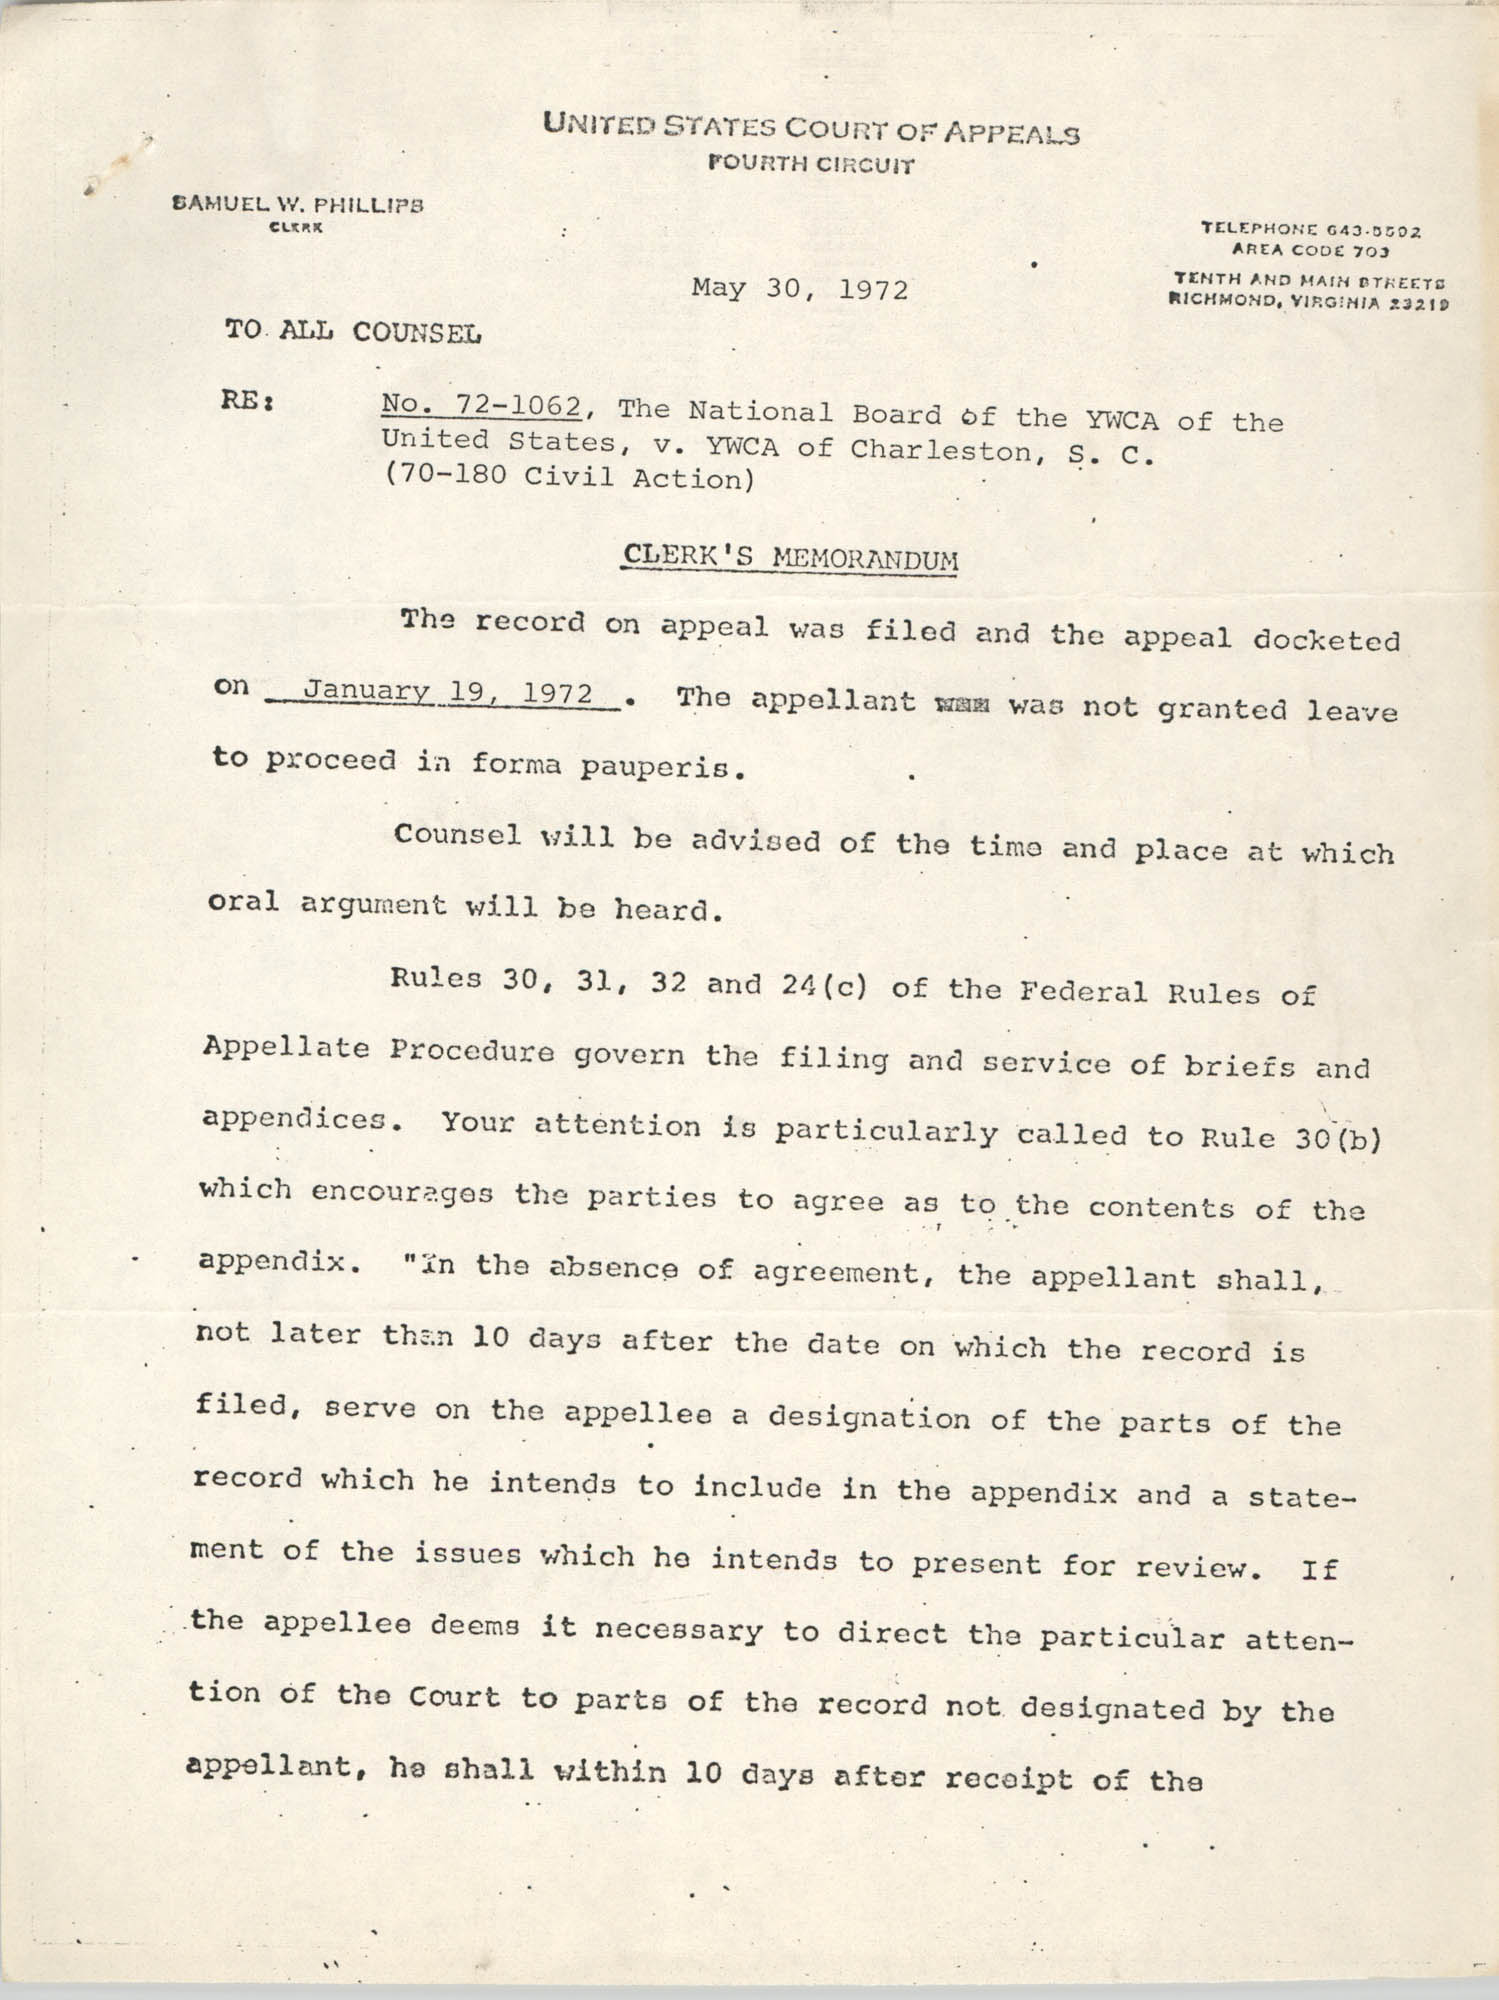 United States Court of Appeals, Fourth Circuit, Clerk's Memorandum, May 30, 1972